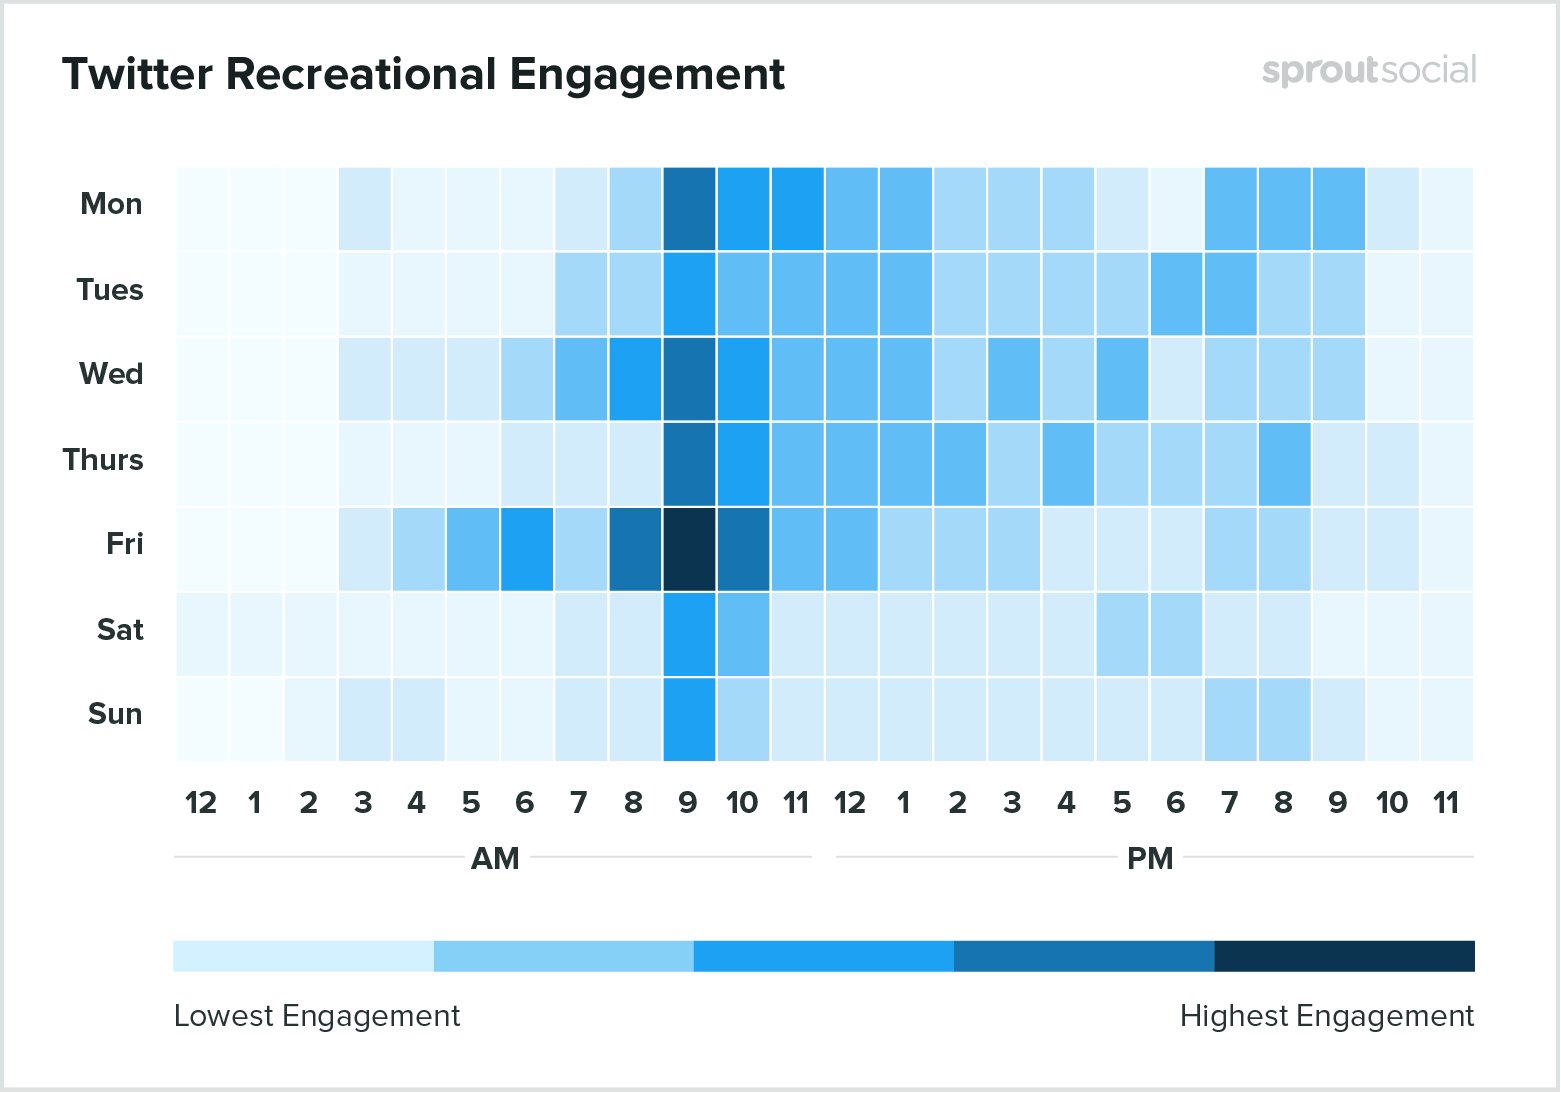 Best times to post on Twitter for recreation 2020